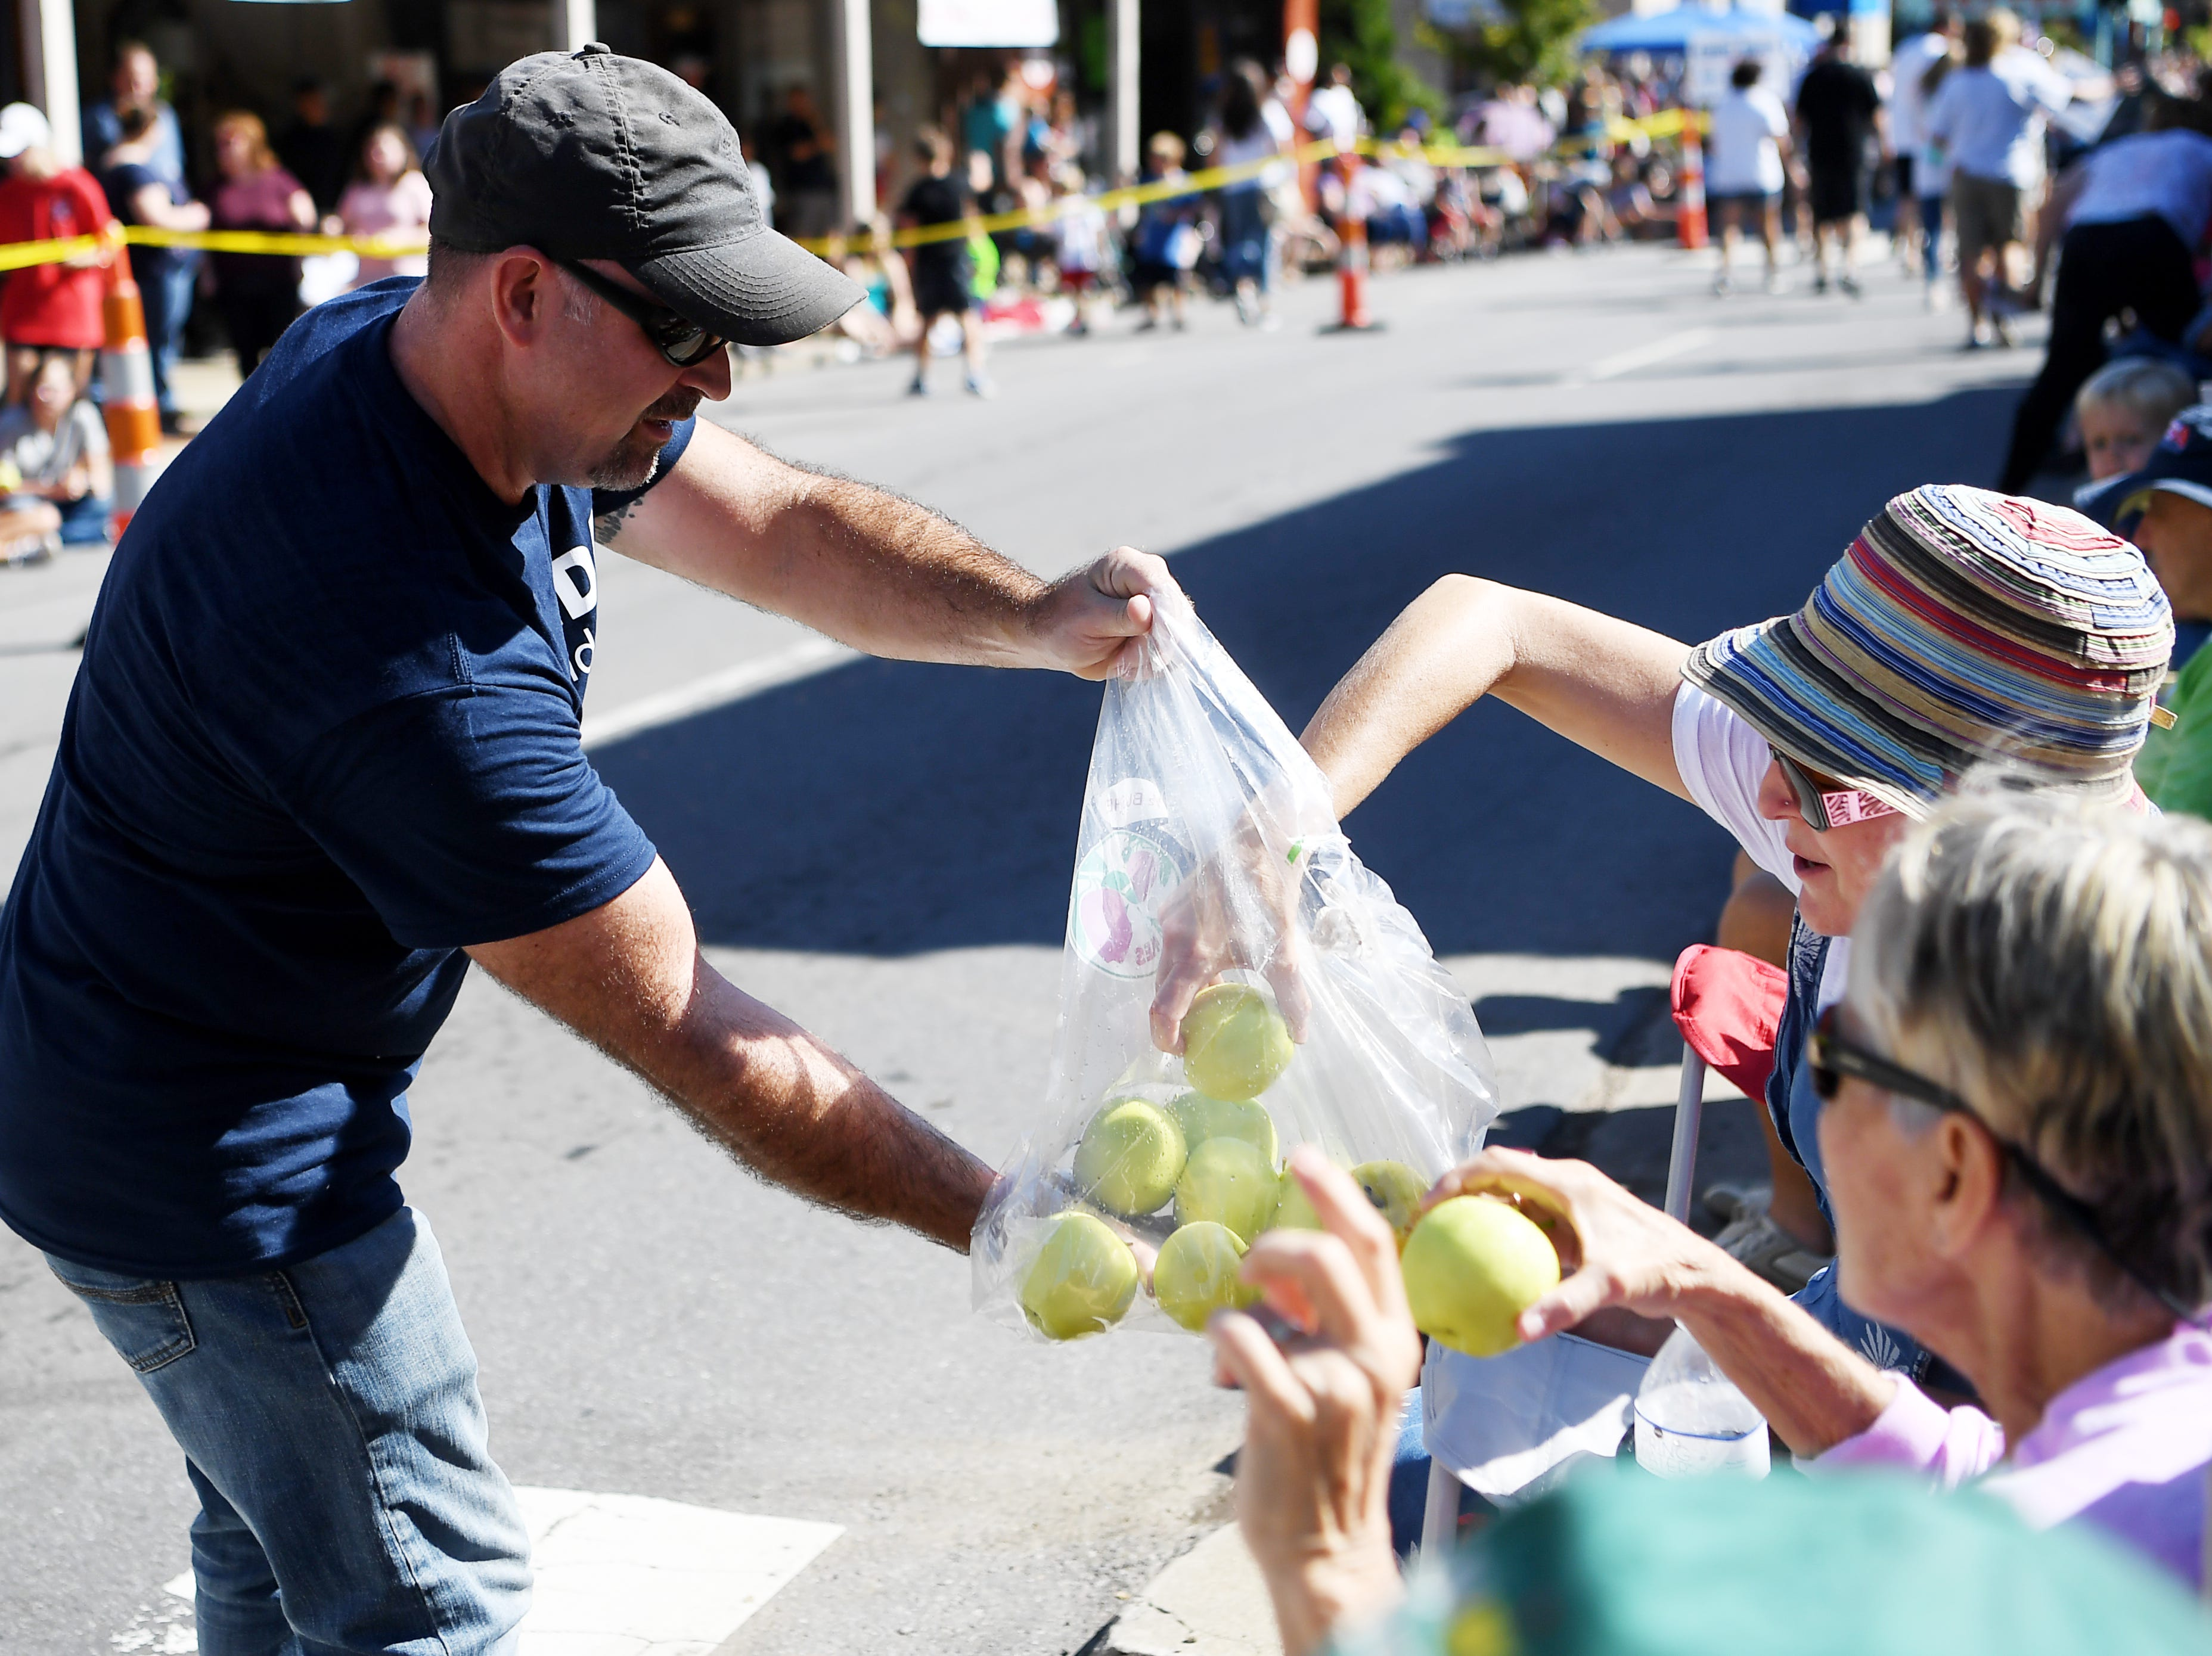 Apples are handed out to spectators during Canton's Labor Day parade September 3, 2018.